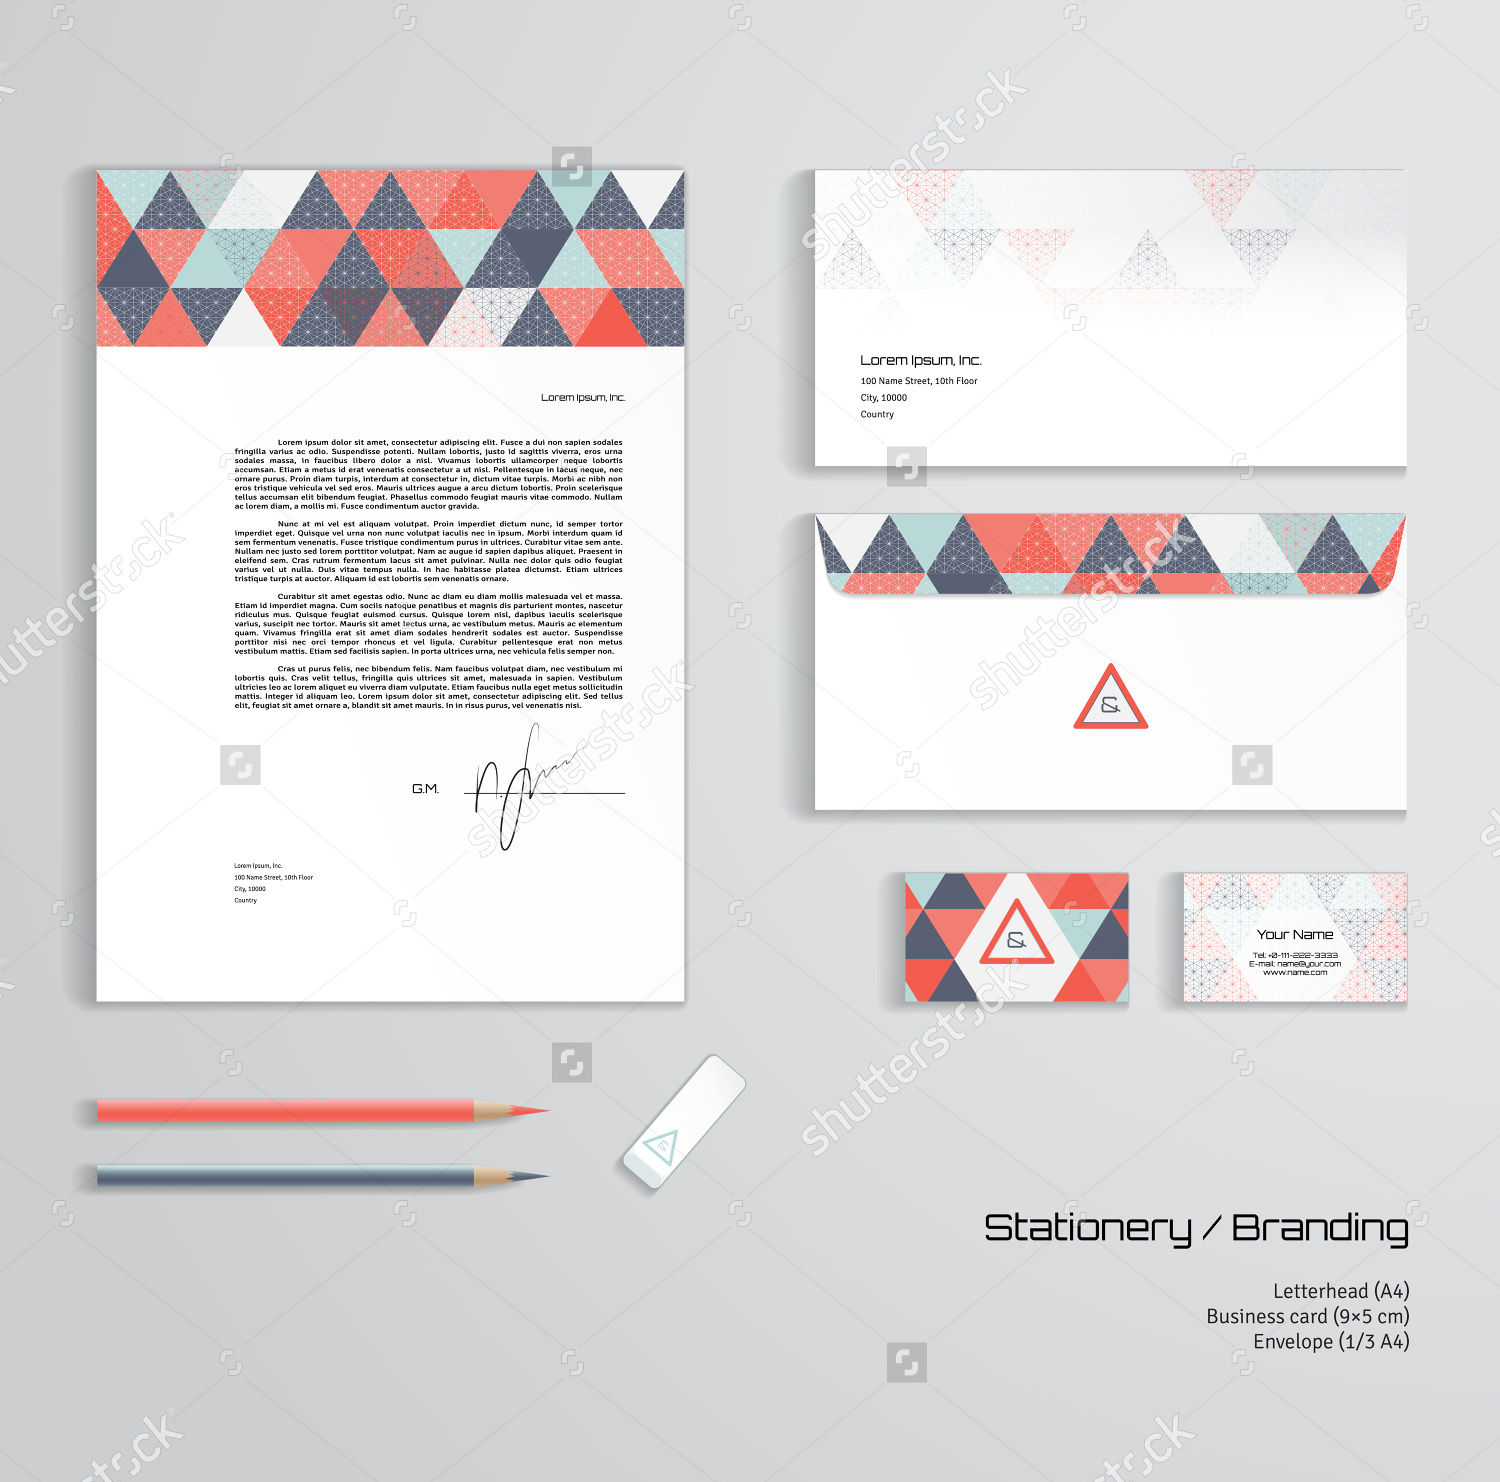 Design Trends Premium Psd Vector Downloads: 10+ Printable Envelope Designs